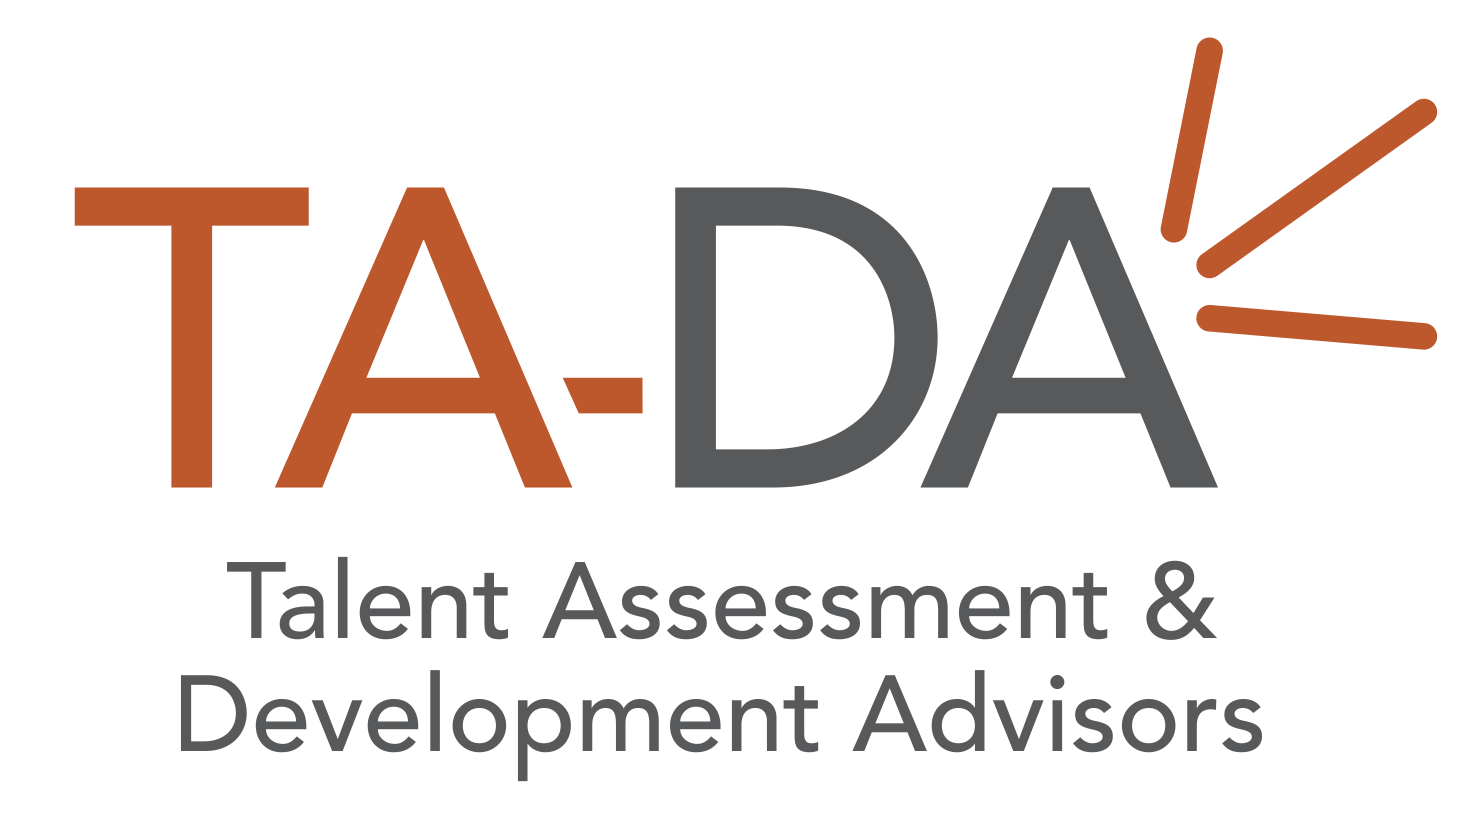 Talent Assessment & Development Advisors